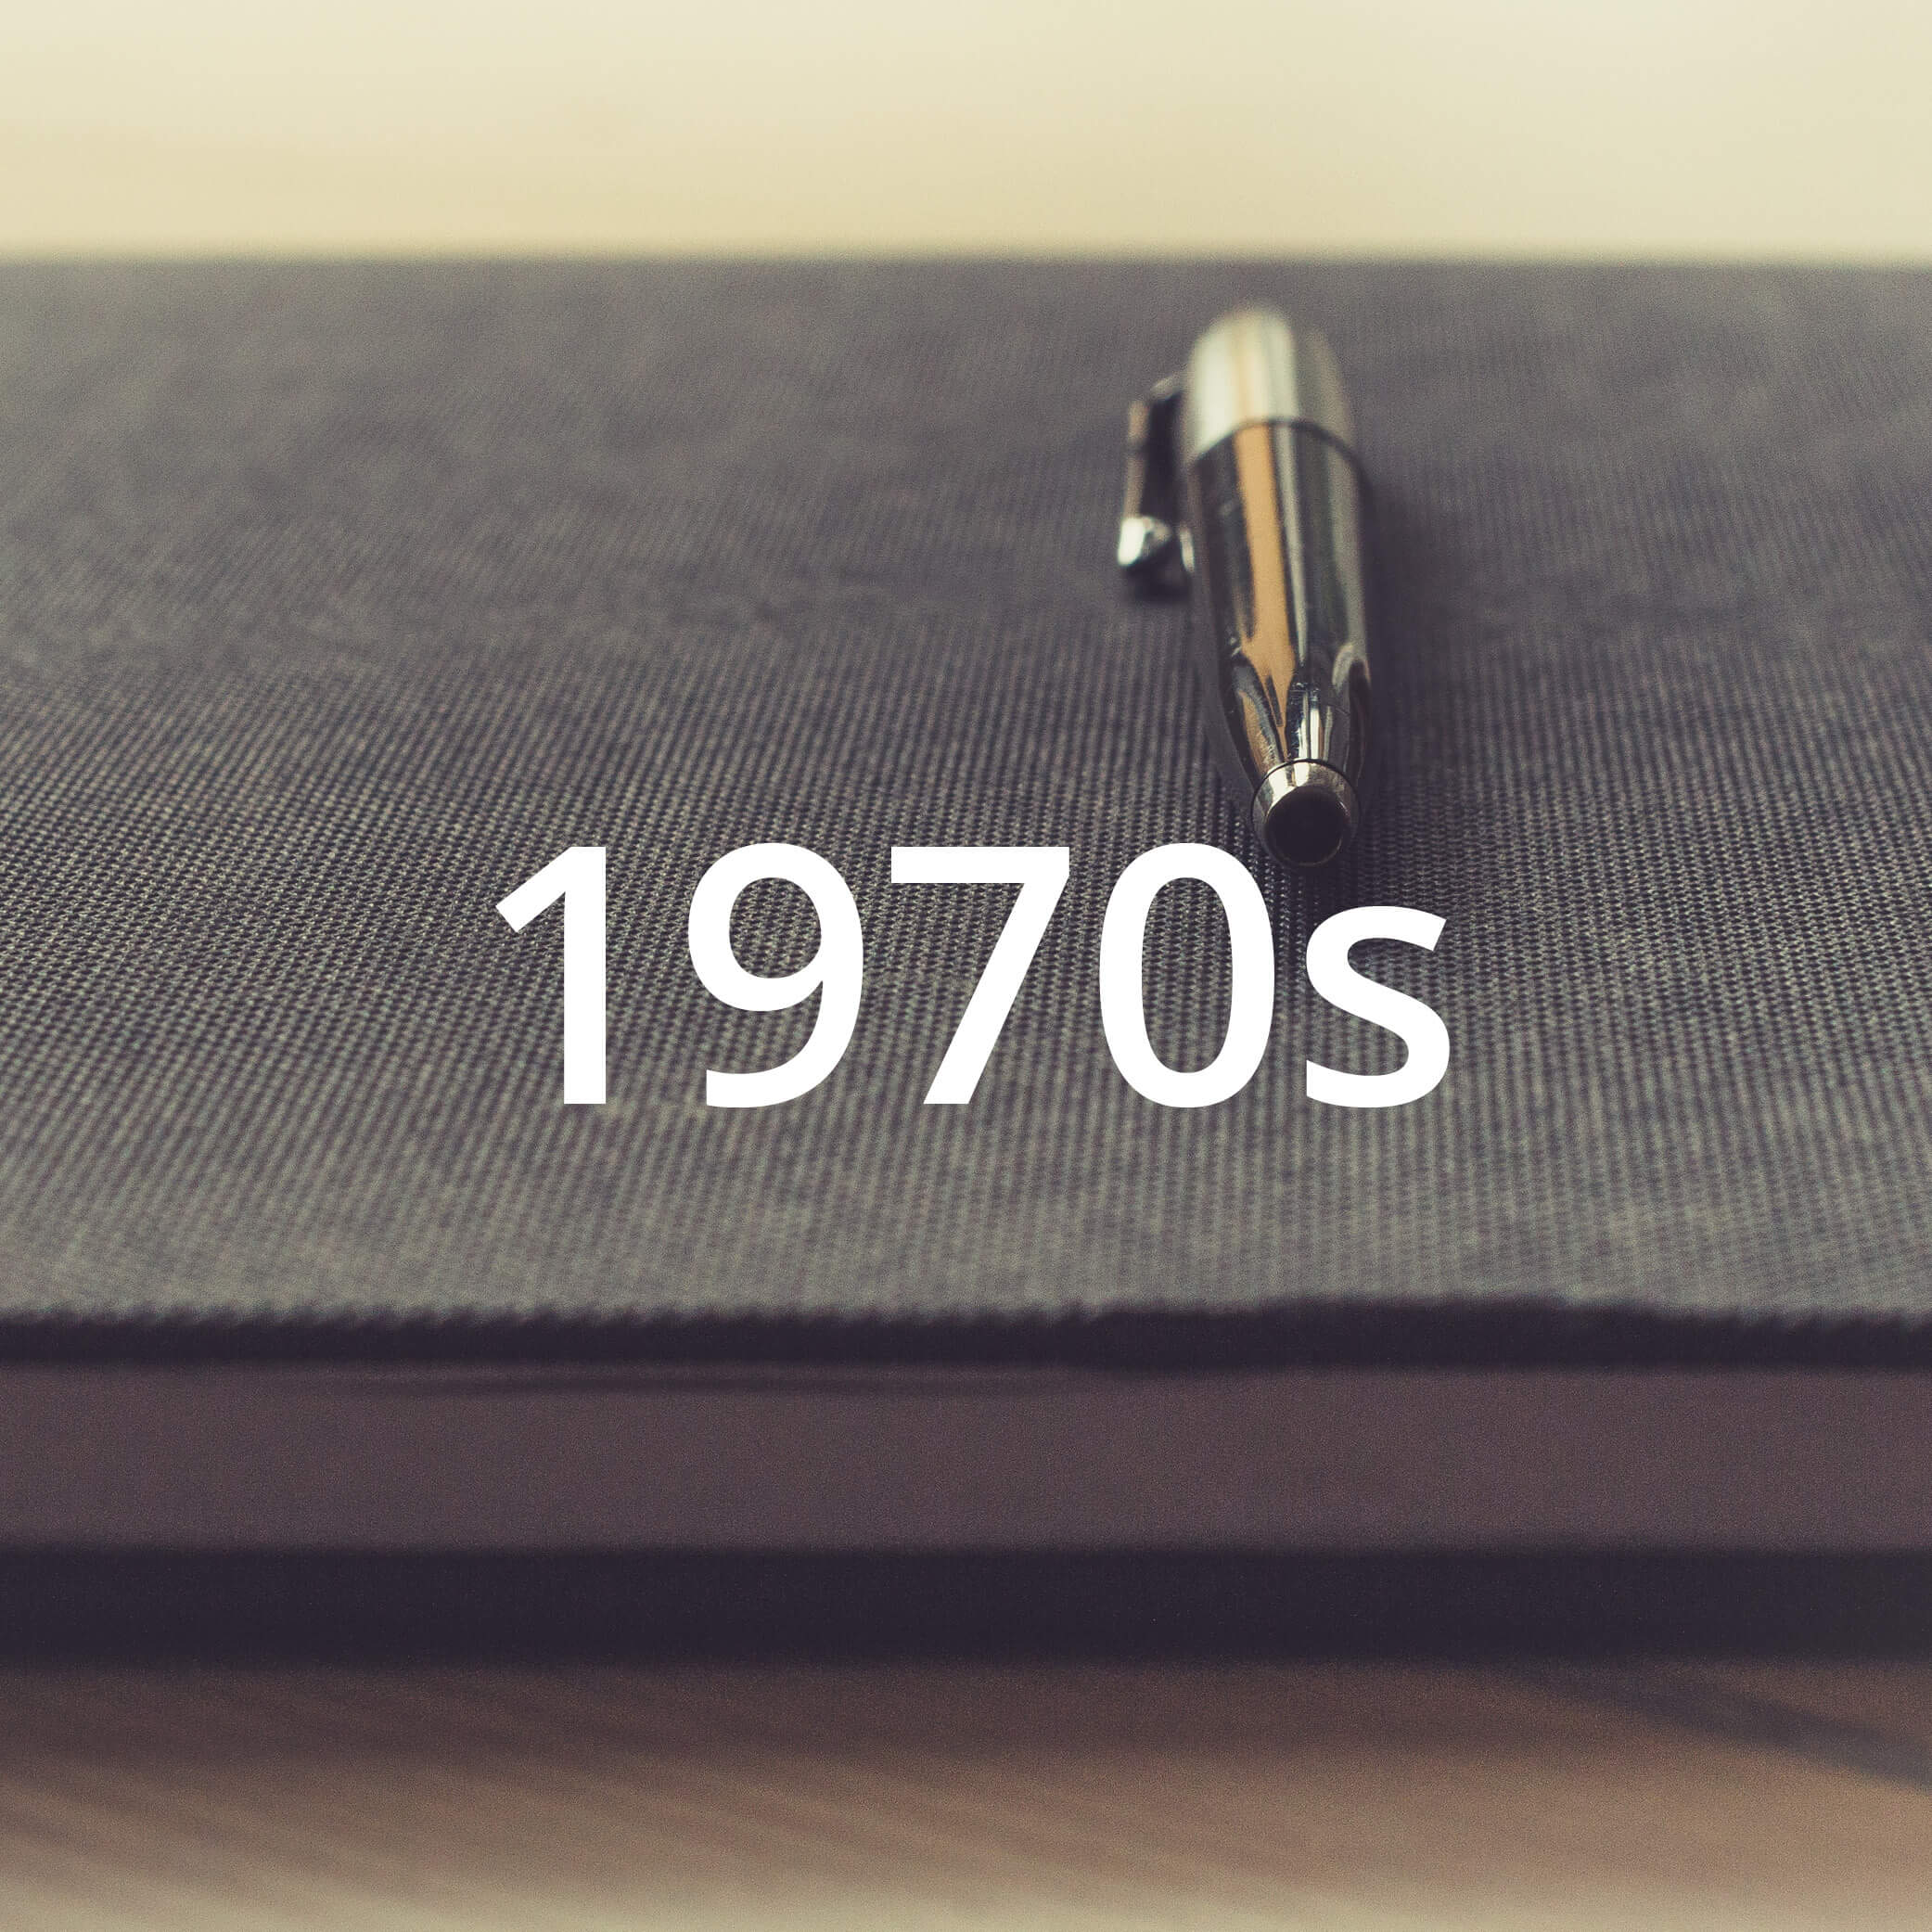 """Photo of a pen laying on a book. Photo also features a text overlay that reads """"1970s""""."""